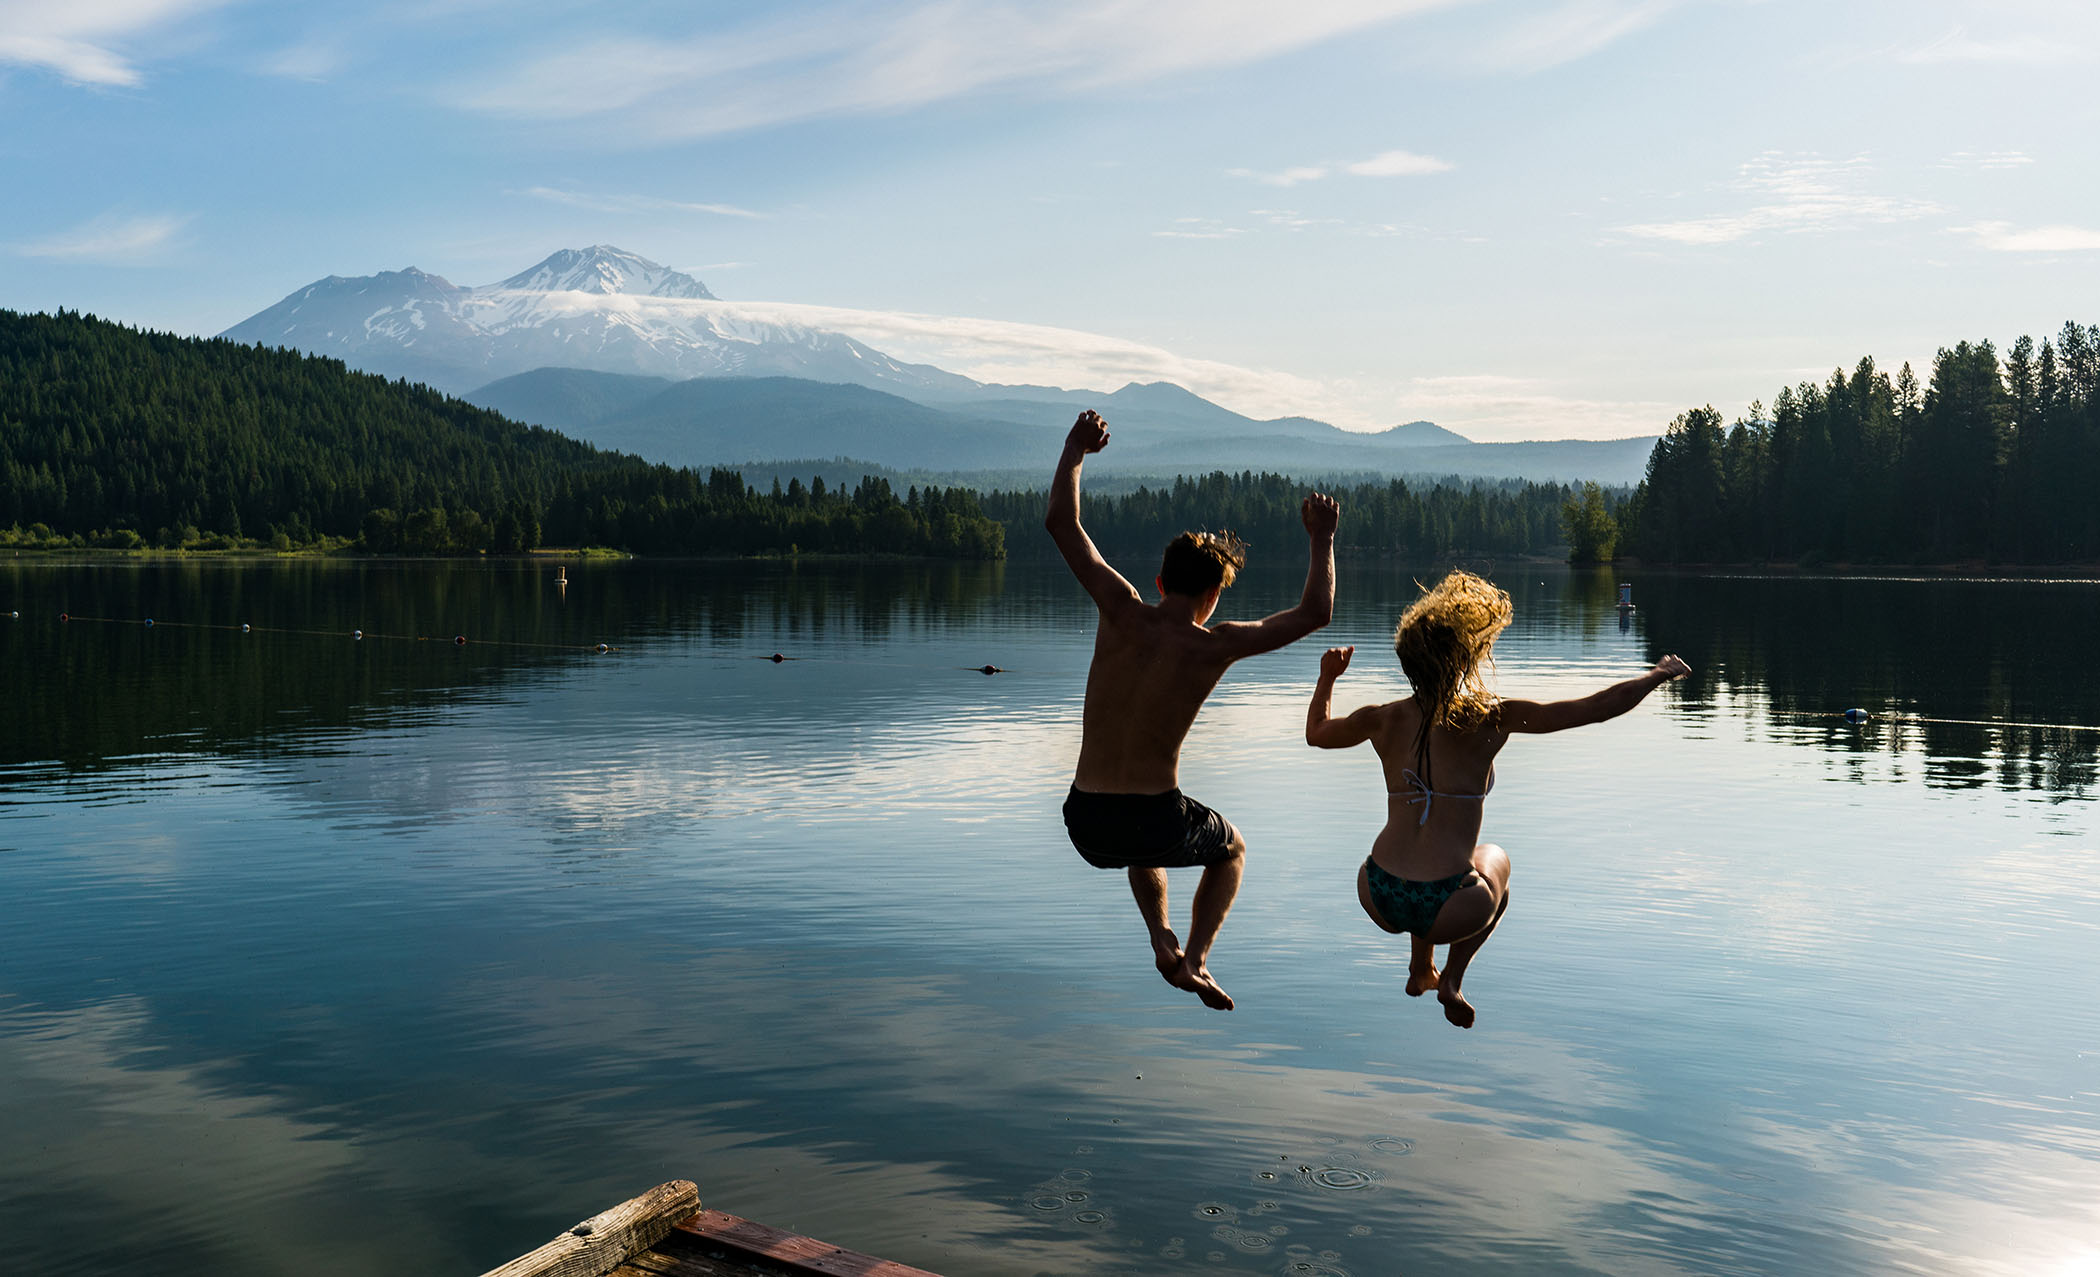 Jumping into Lake Siskiyou